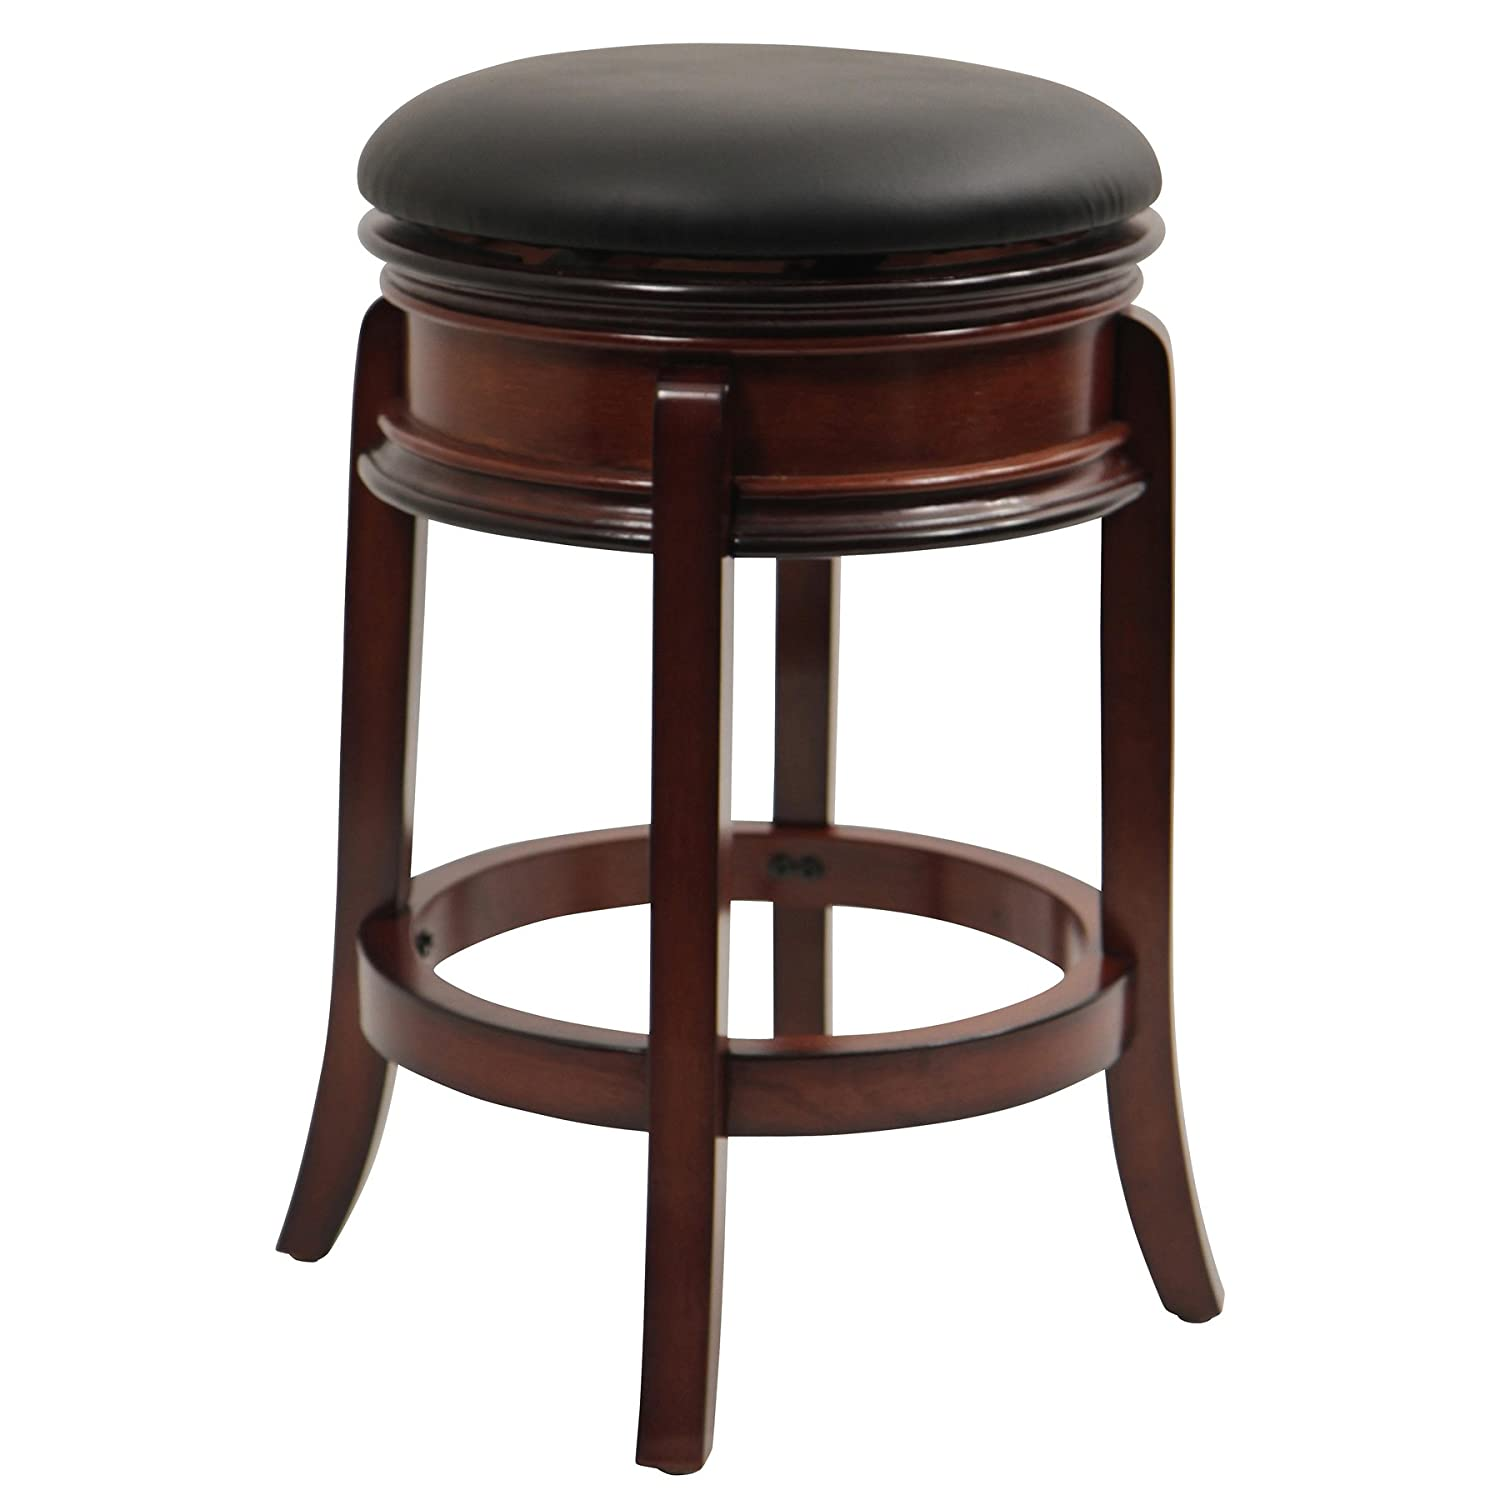 24 inch swivel bar stools full size of bar24 swivel bar for 24 inch bar stools